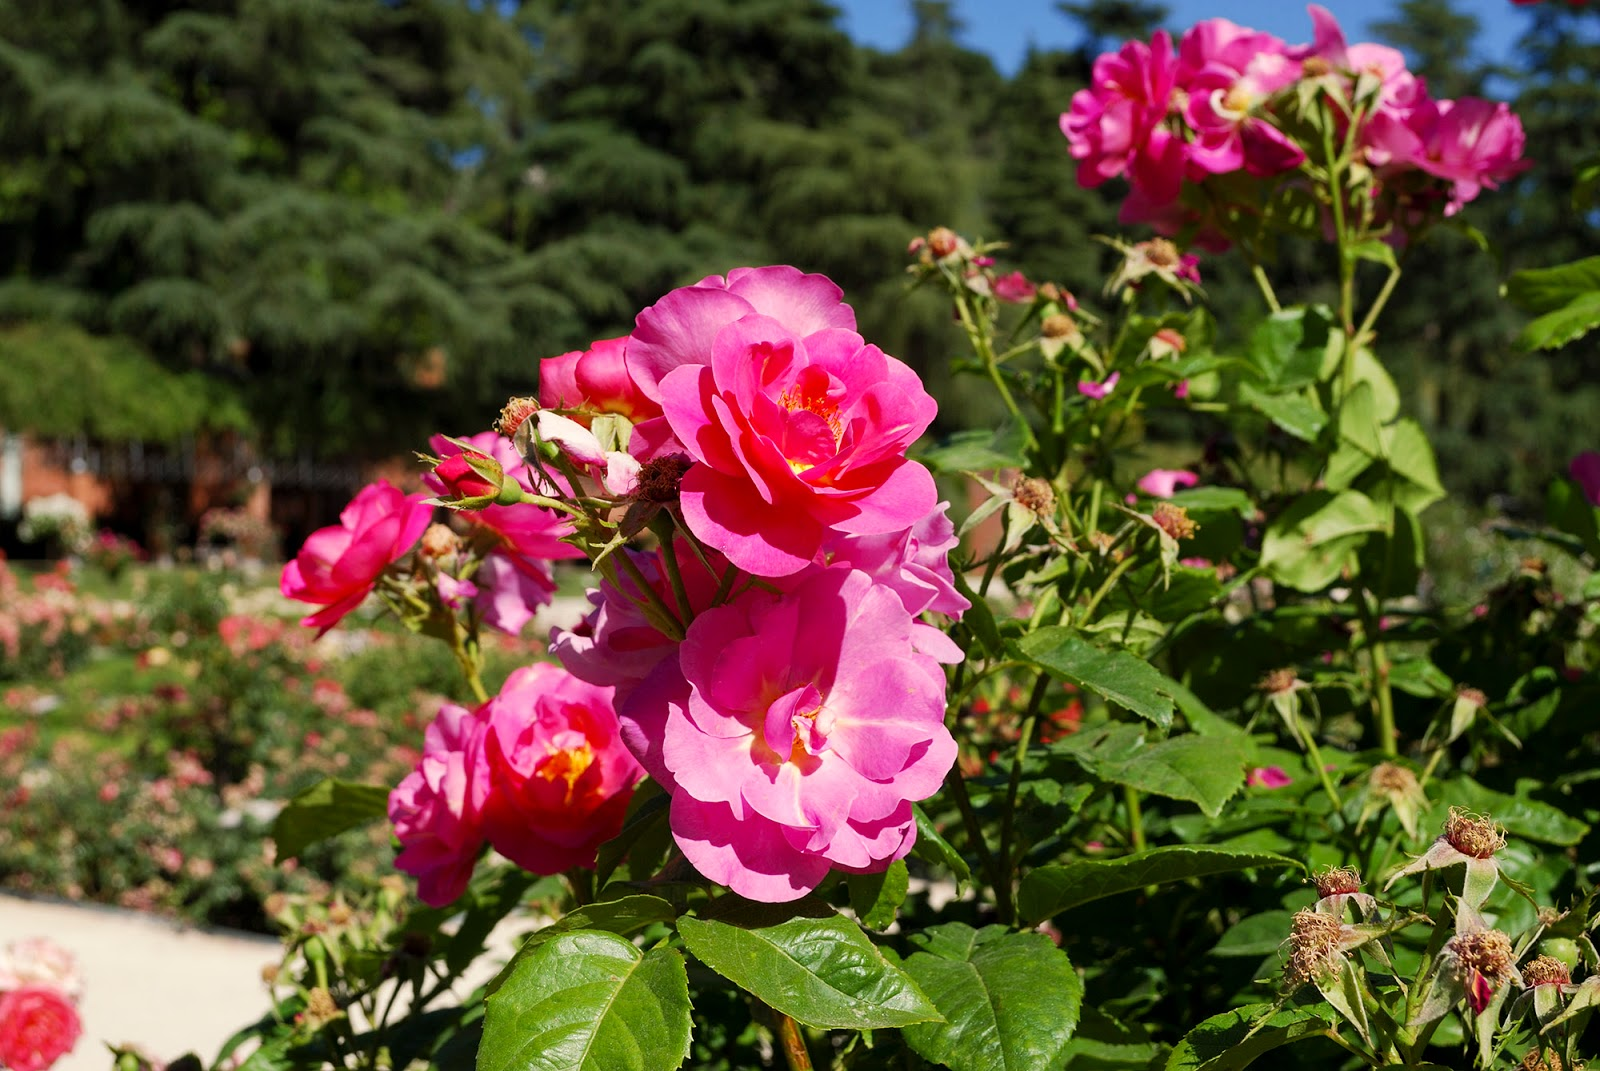 rosaleda rose garden show madrid parque oeste west park beautiful moncloa spain flower